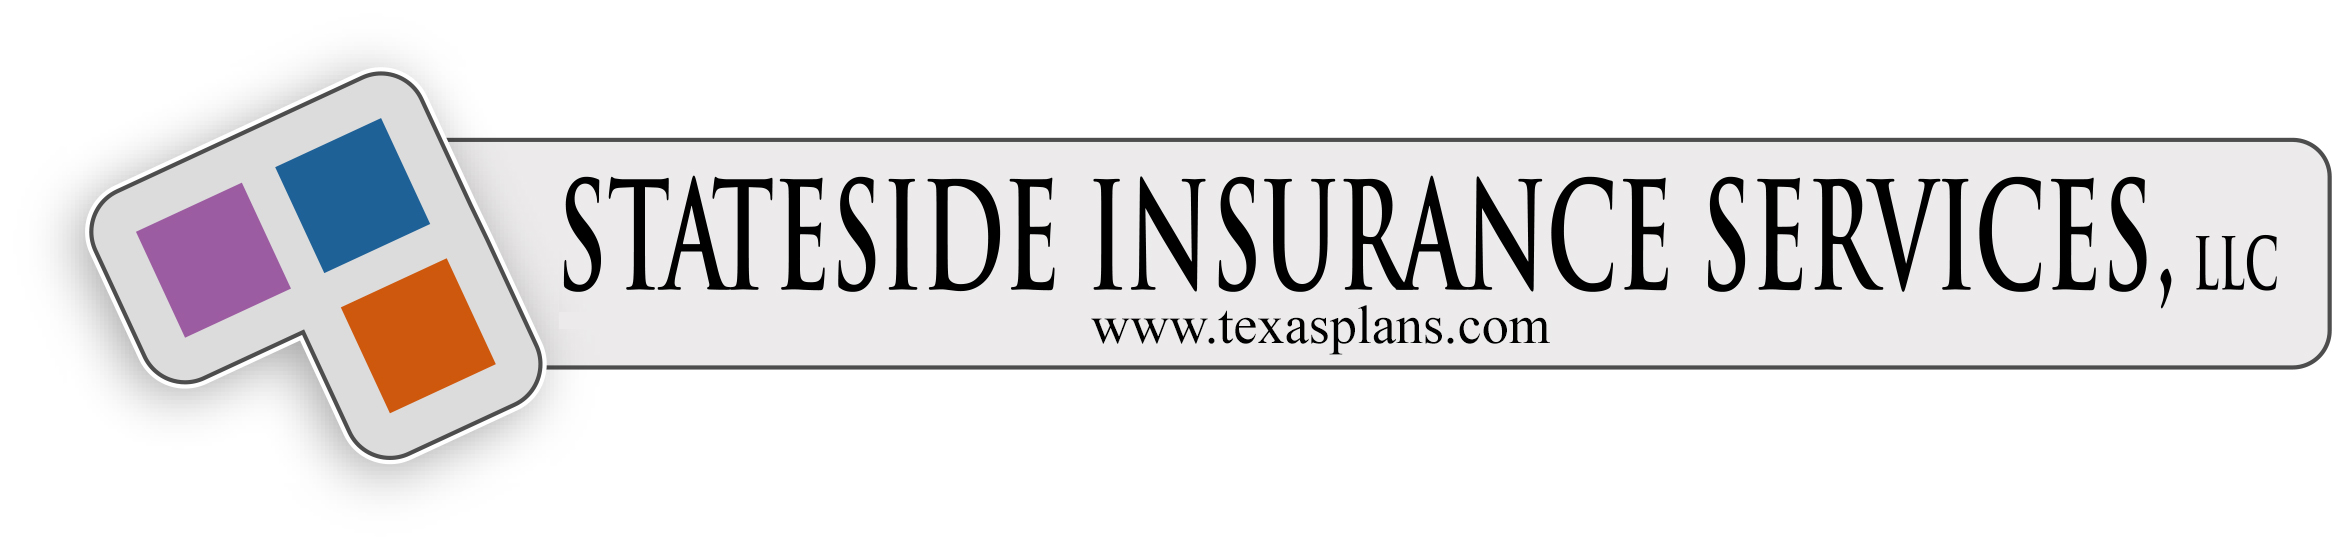 Stateside_with_www_texasplans_com